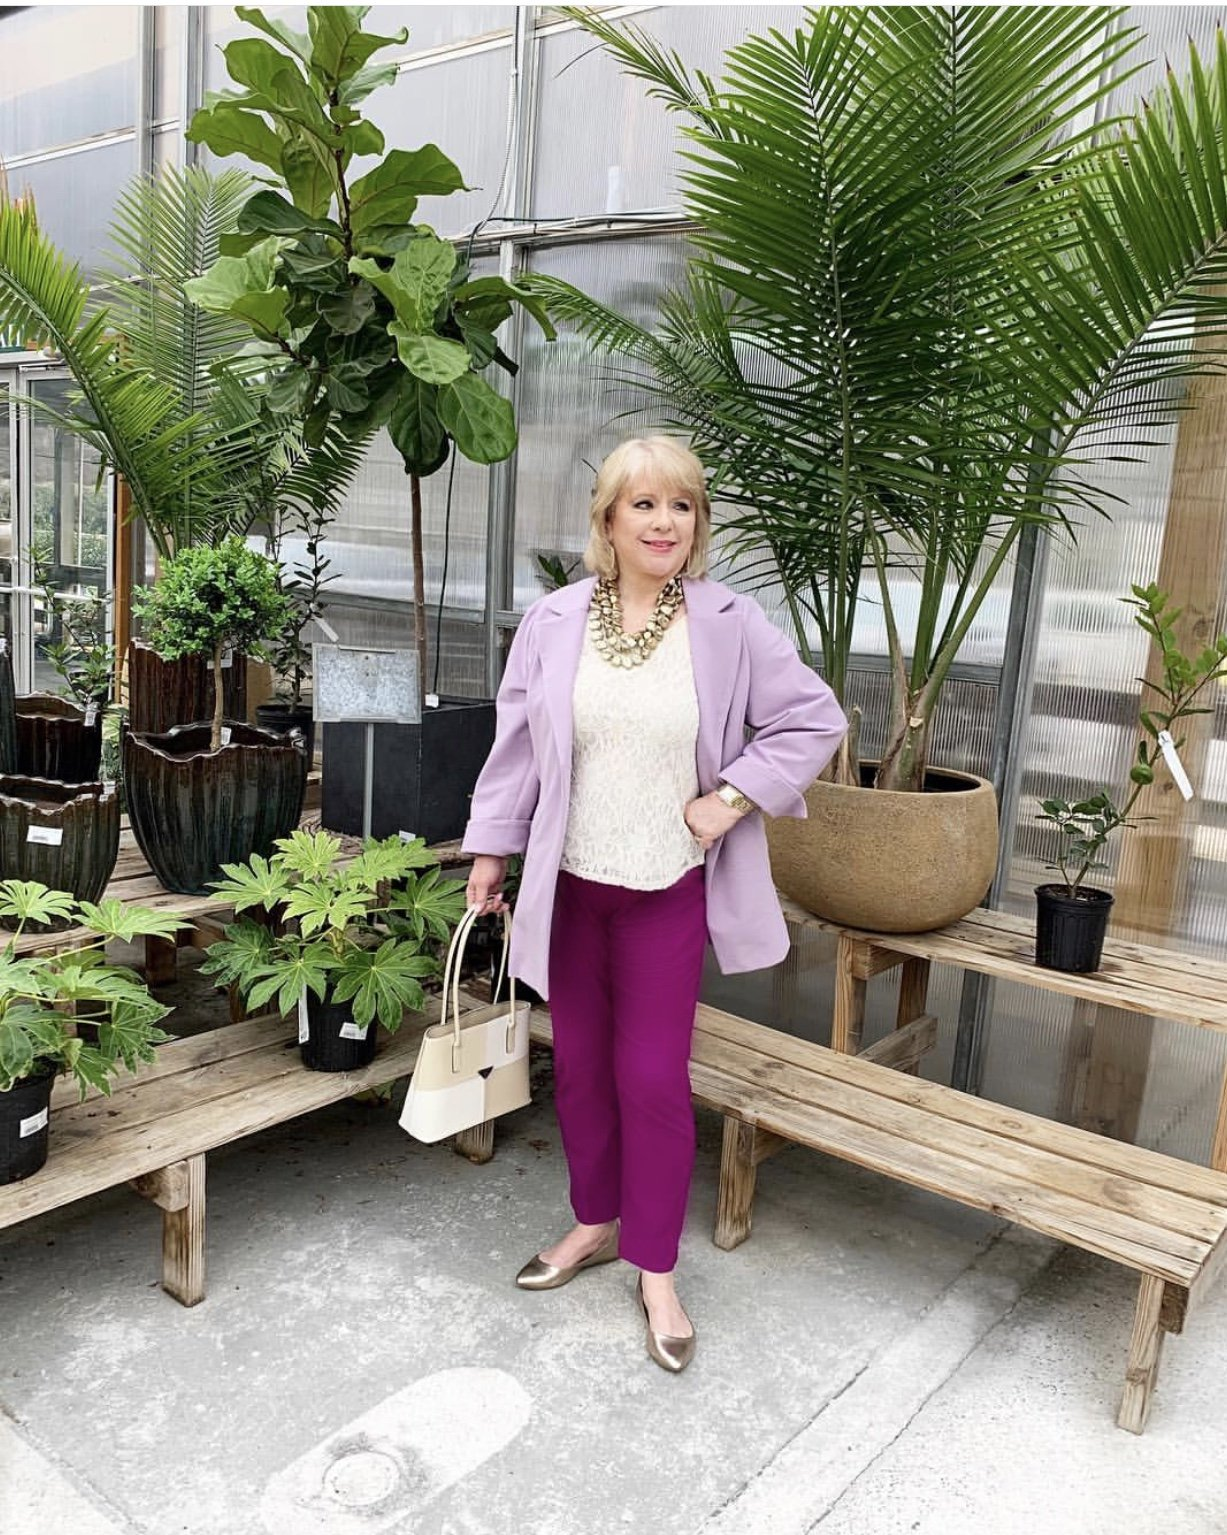 Style Story Interview Classy Colorful Confidence @StyleShennanigans Shannon Holmes Fashion Over 50 60 Confident Classic Romantic Regal Purple Outfit Story Behind The Cloth